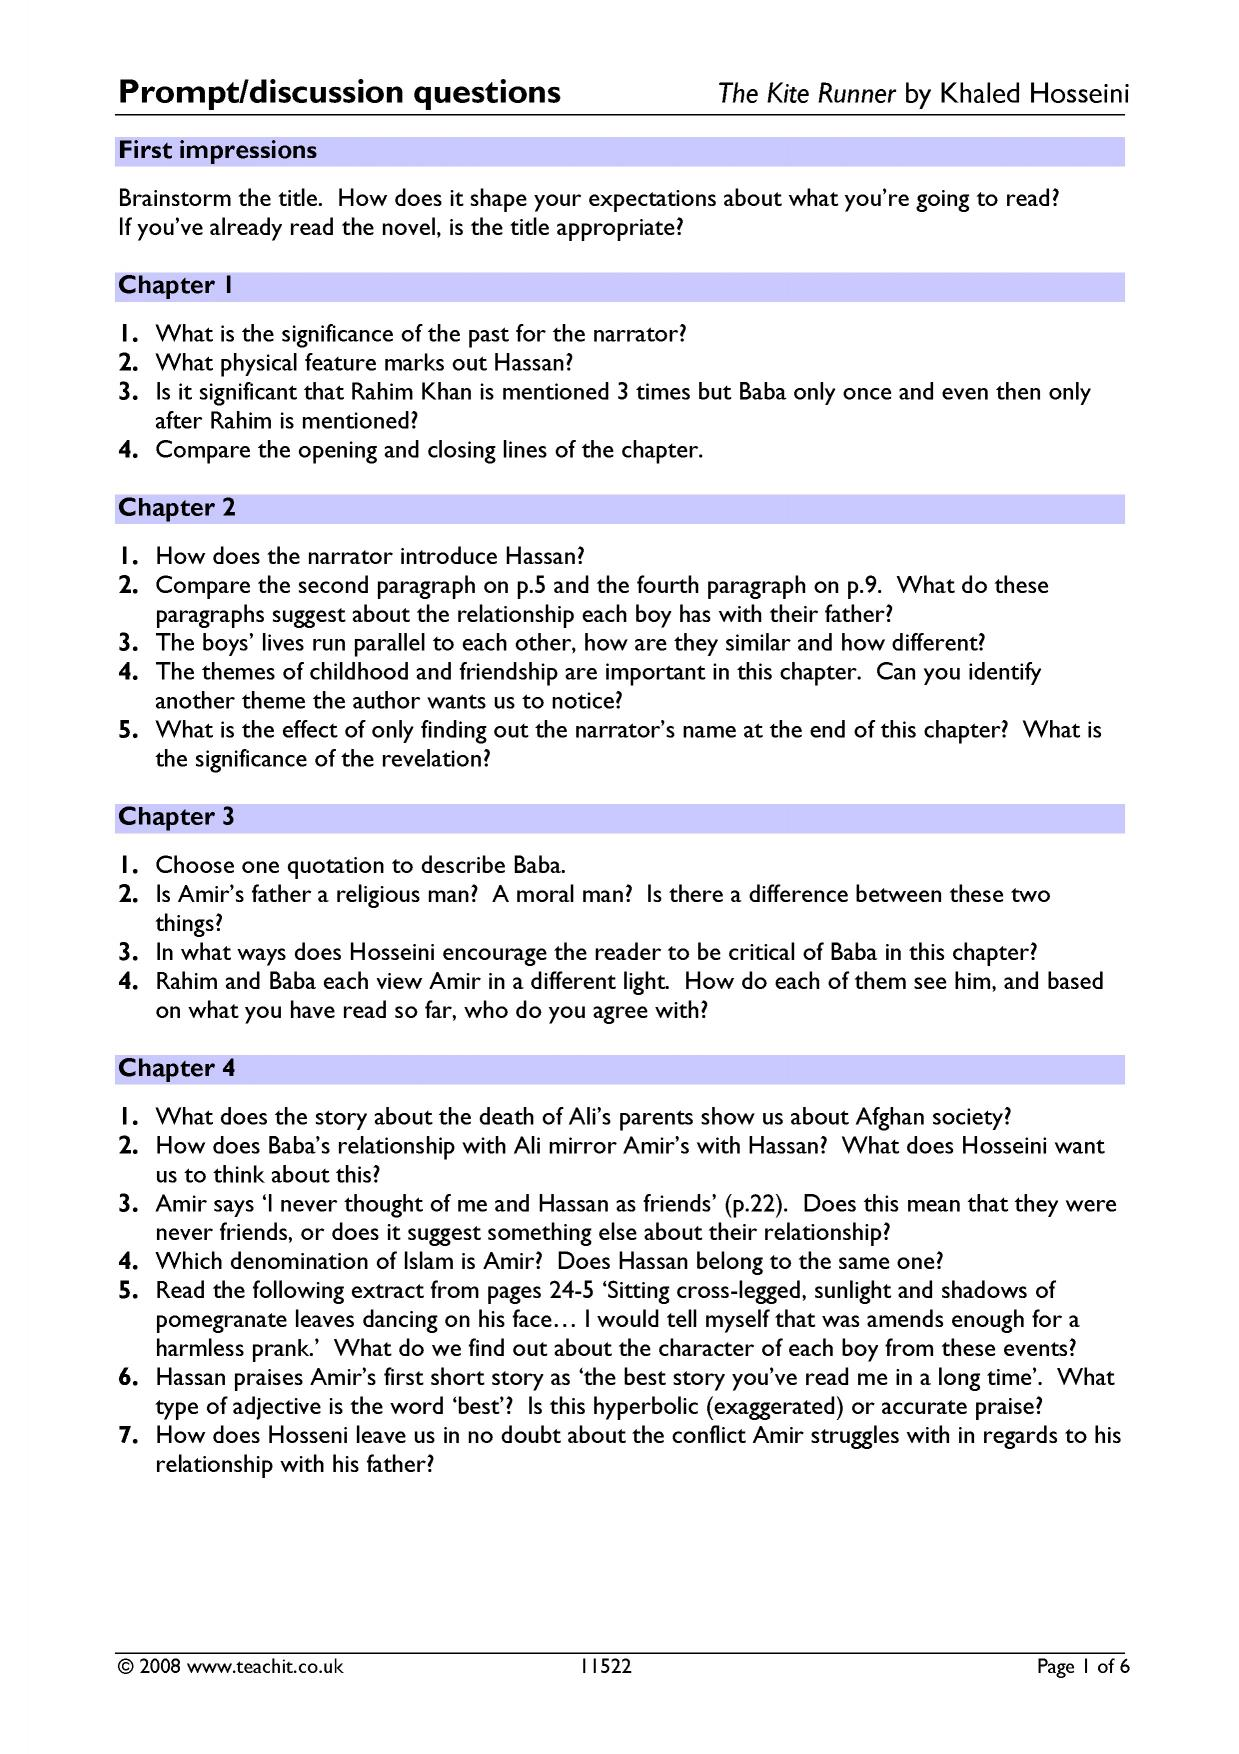 the kite runner essay questions robert cormier heroes essay to  the kite runner by khaled hosseini prose key stage english 0 preview